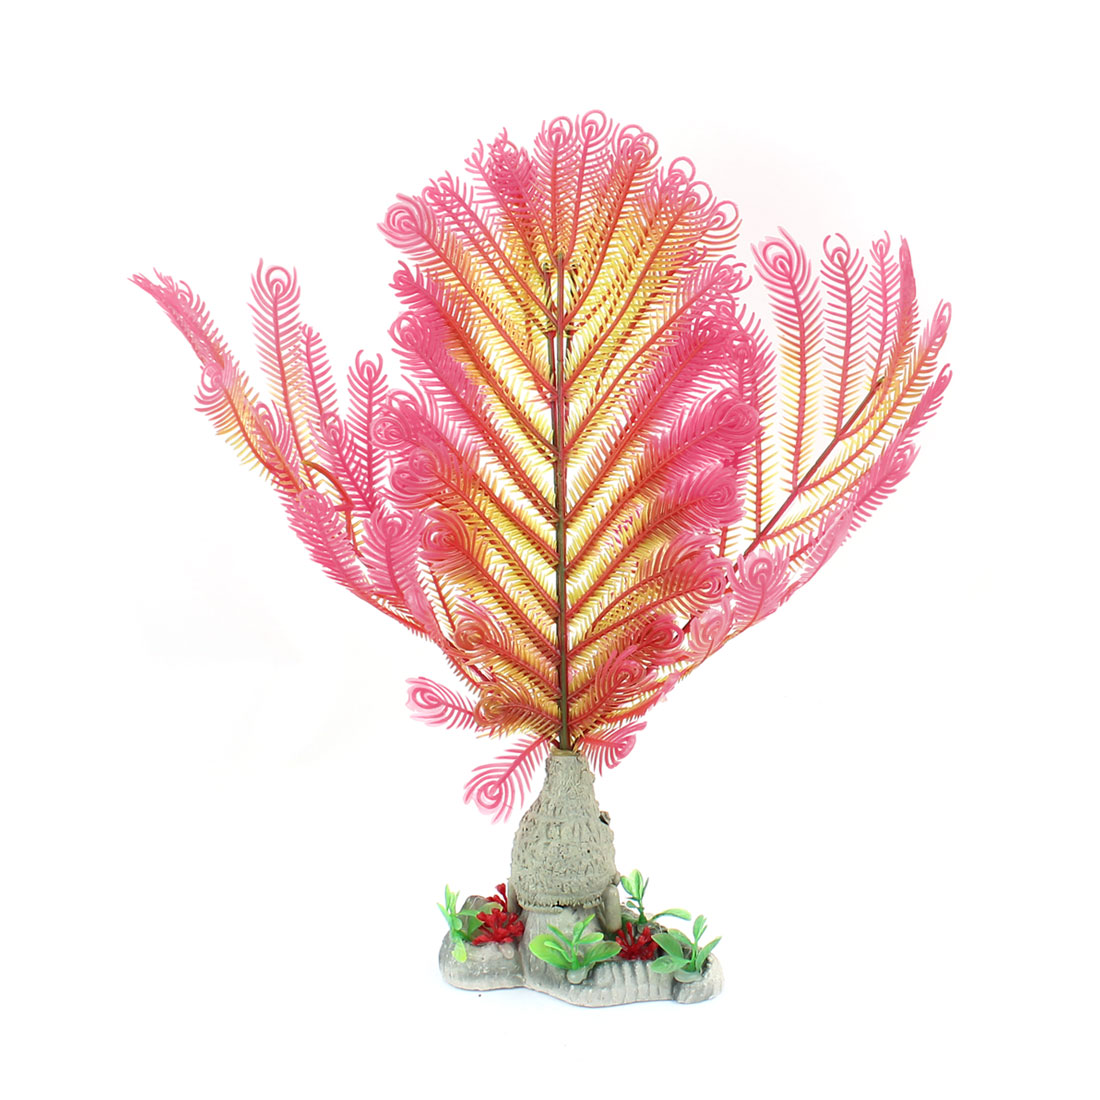 Plastic Underwater Aquatic Plant Fish Tank Aquarium Decor 32cm High Pink